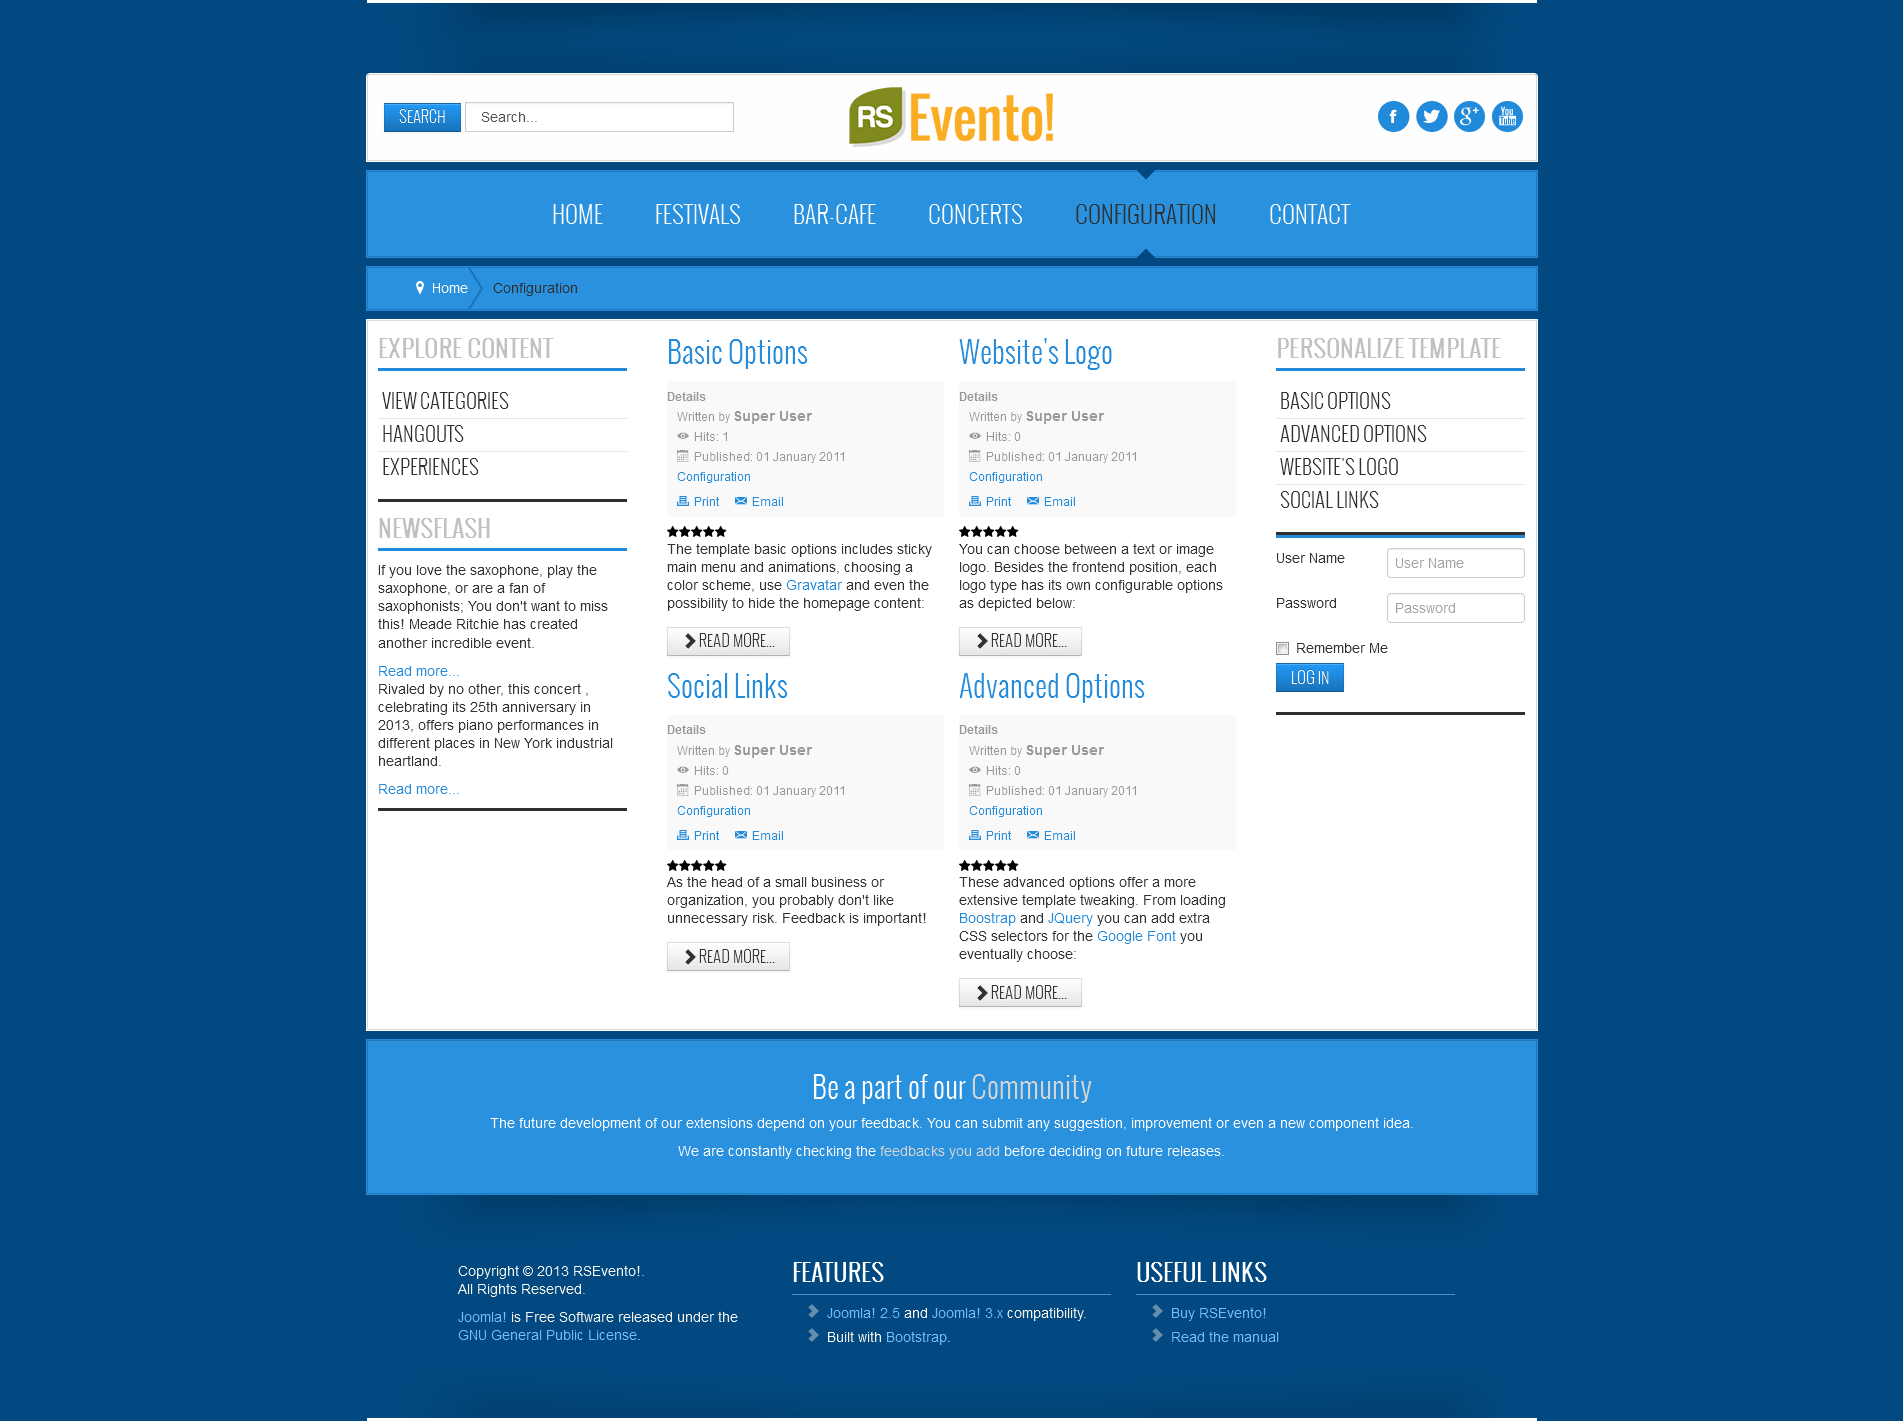 RSEvento! - Joomla! 2.5 and 3.x responsive template released